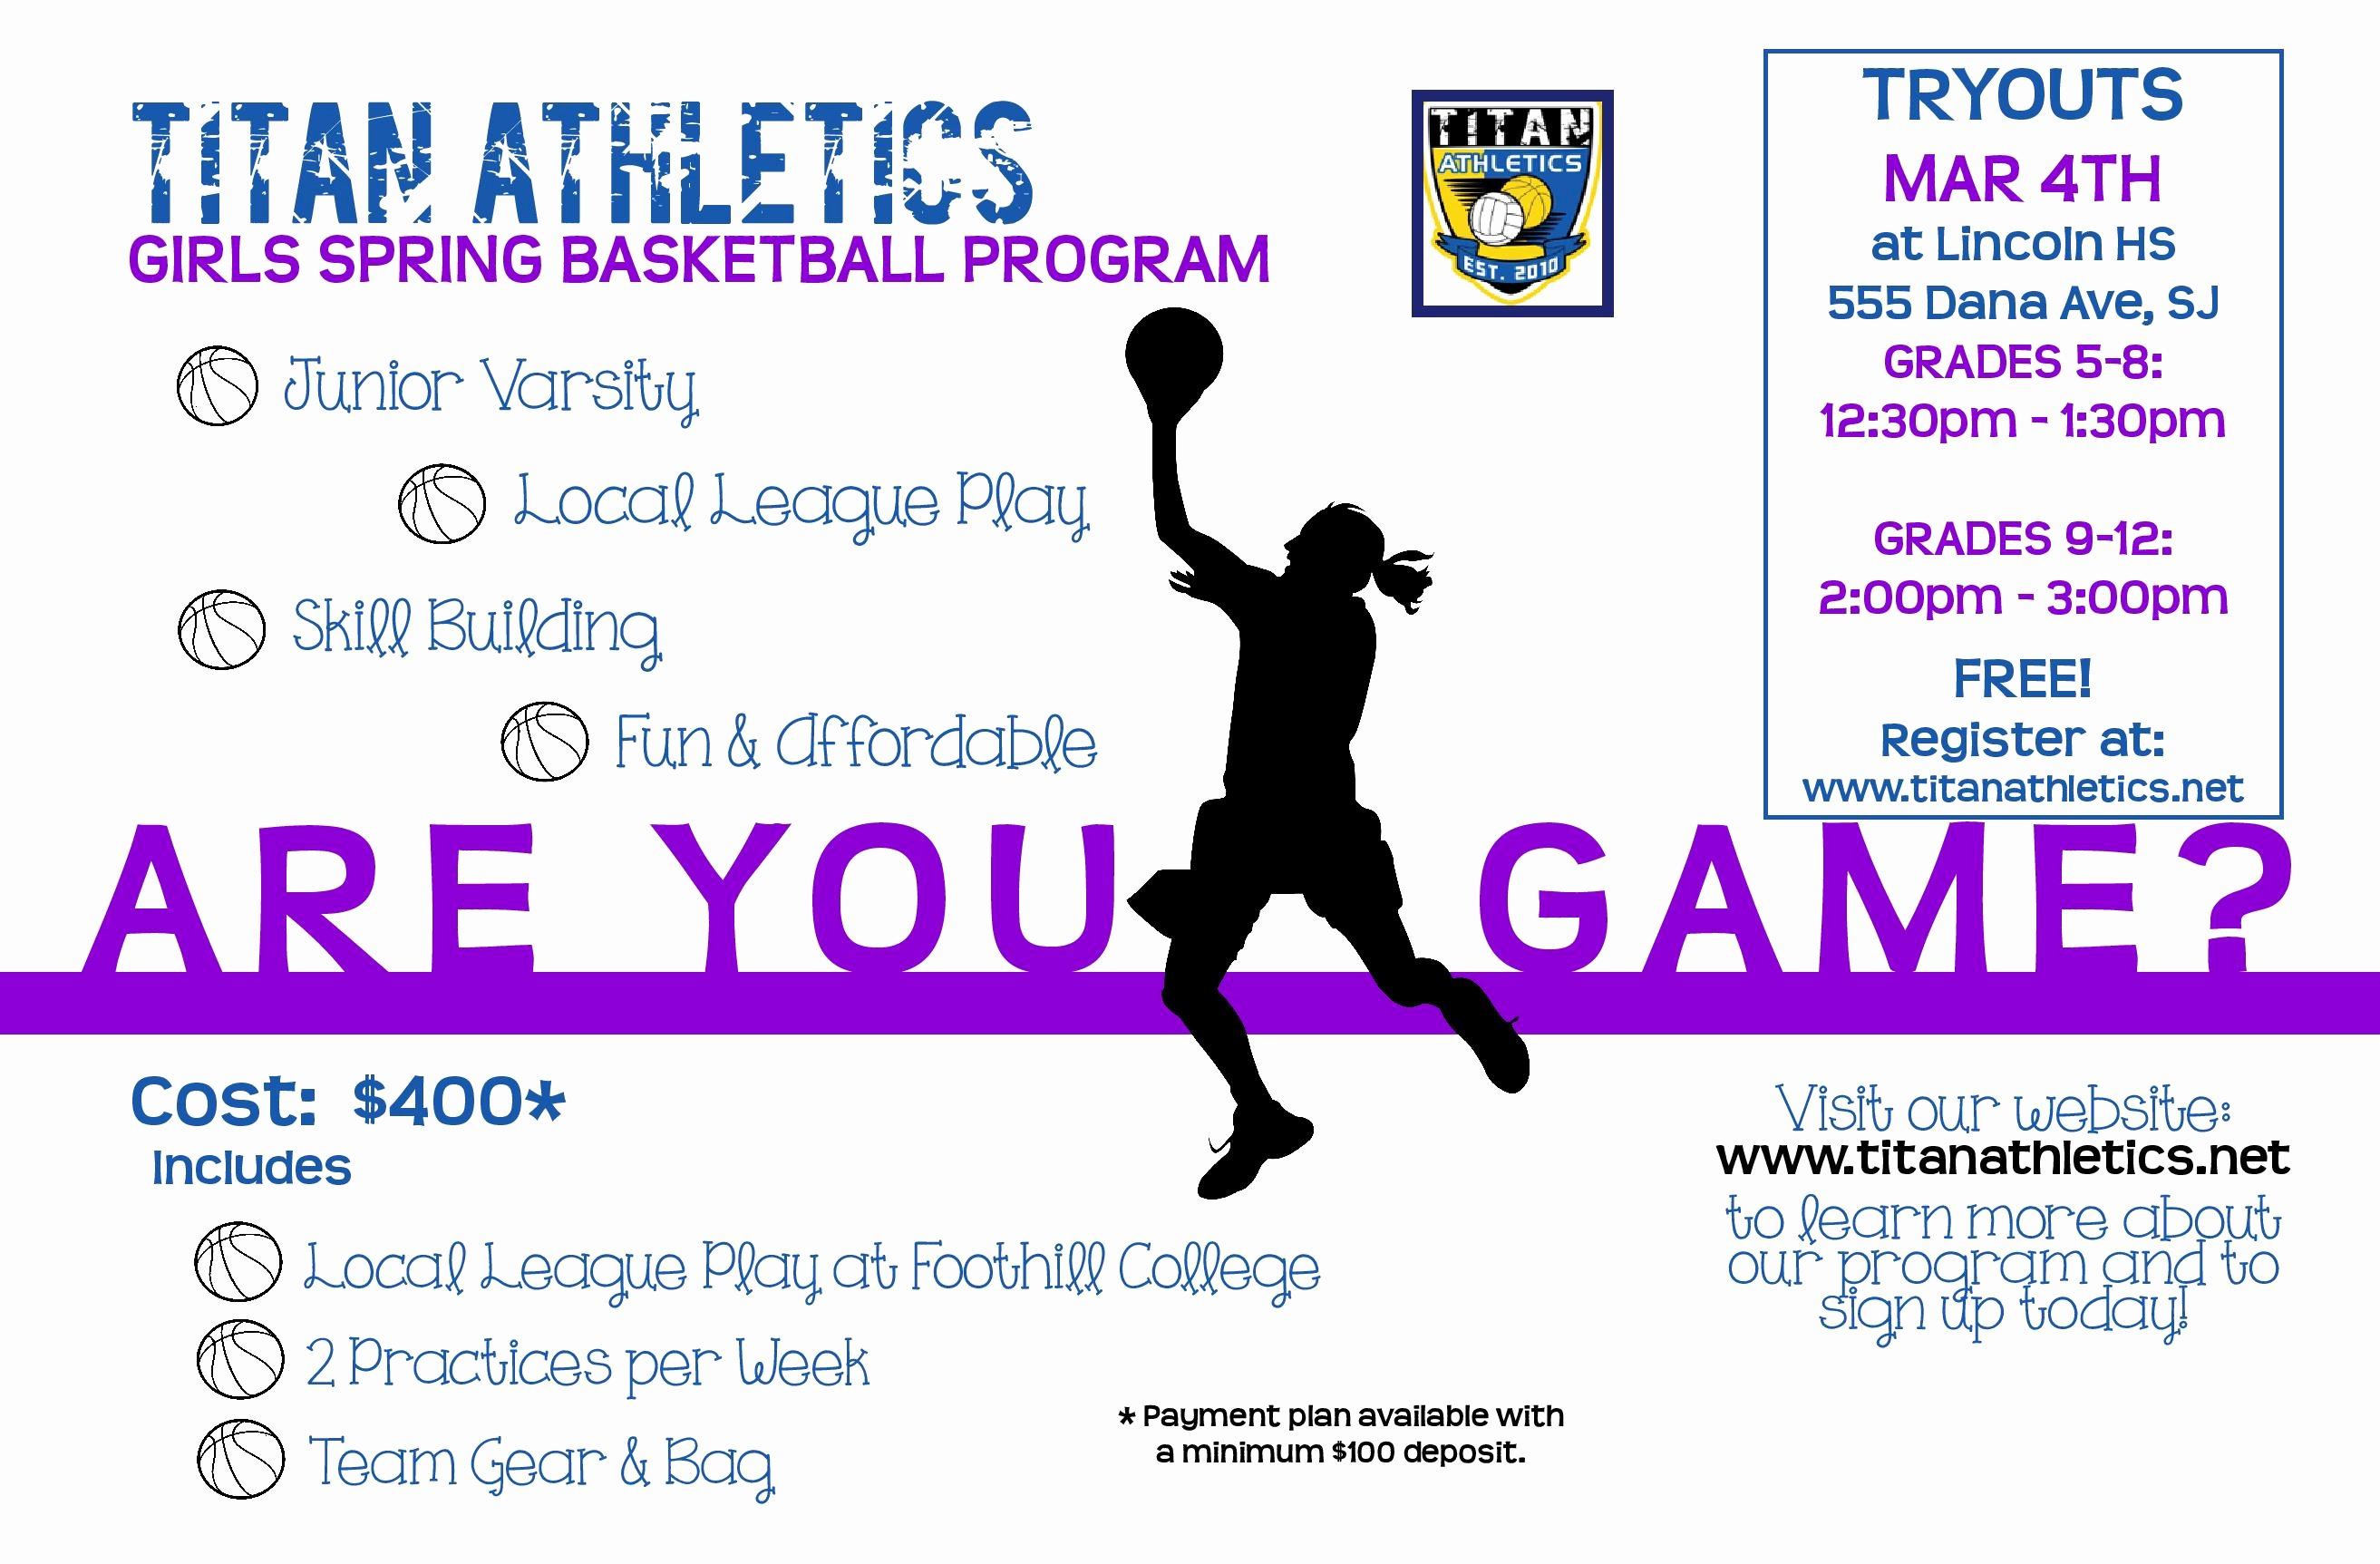 Basketball Tryout Flyer Template New the Gallery for Basketball Tryouts Flyer